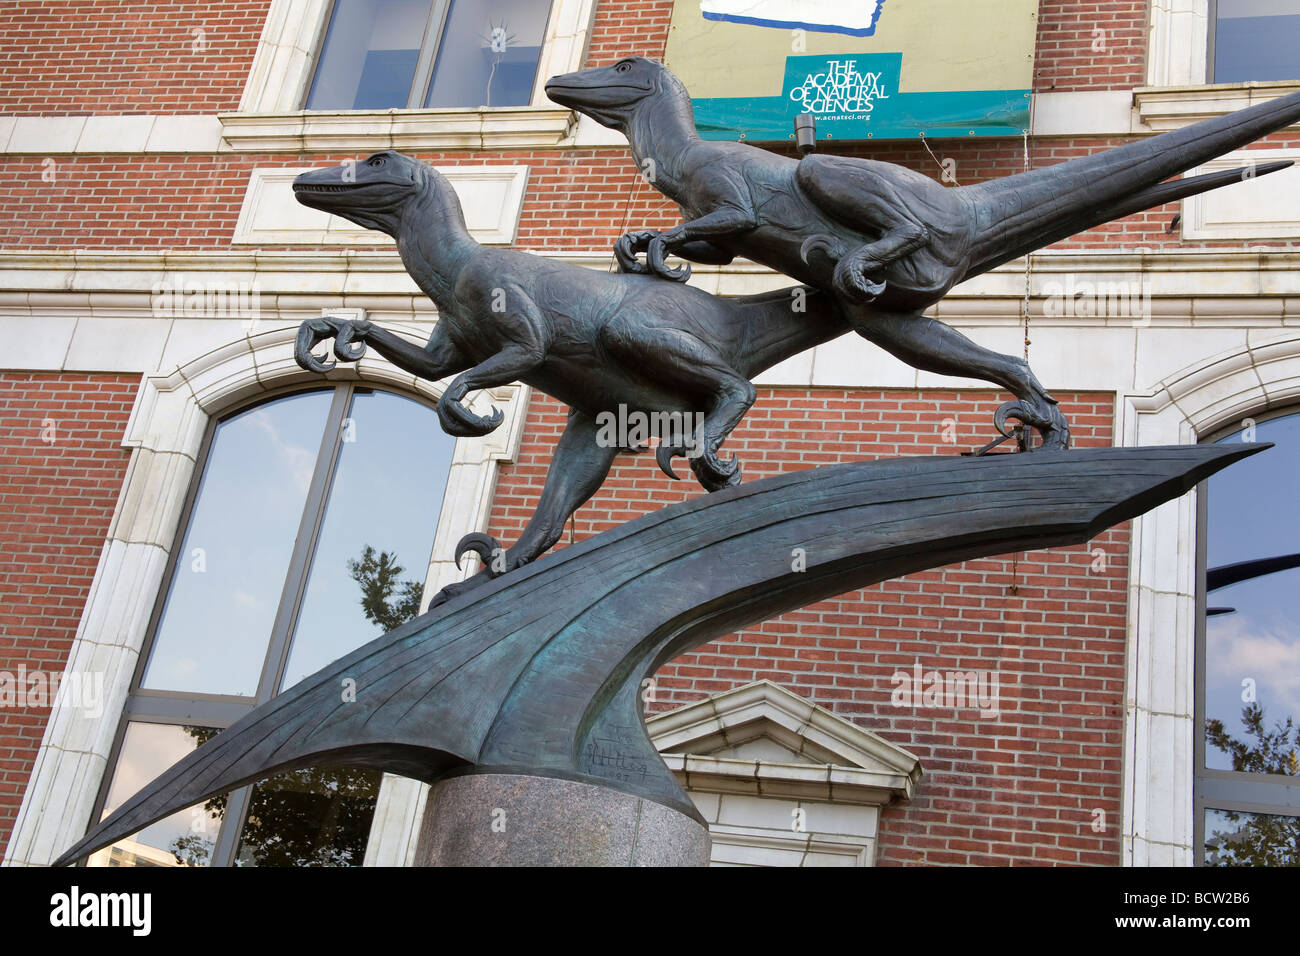 Deinonychus in a museum, Academy Of Natural Sciences, Logan Square, Philadelphia, Pennsylvania, USA - Stock Image